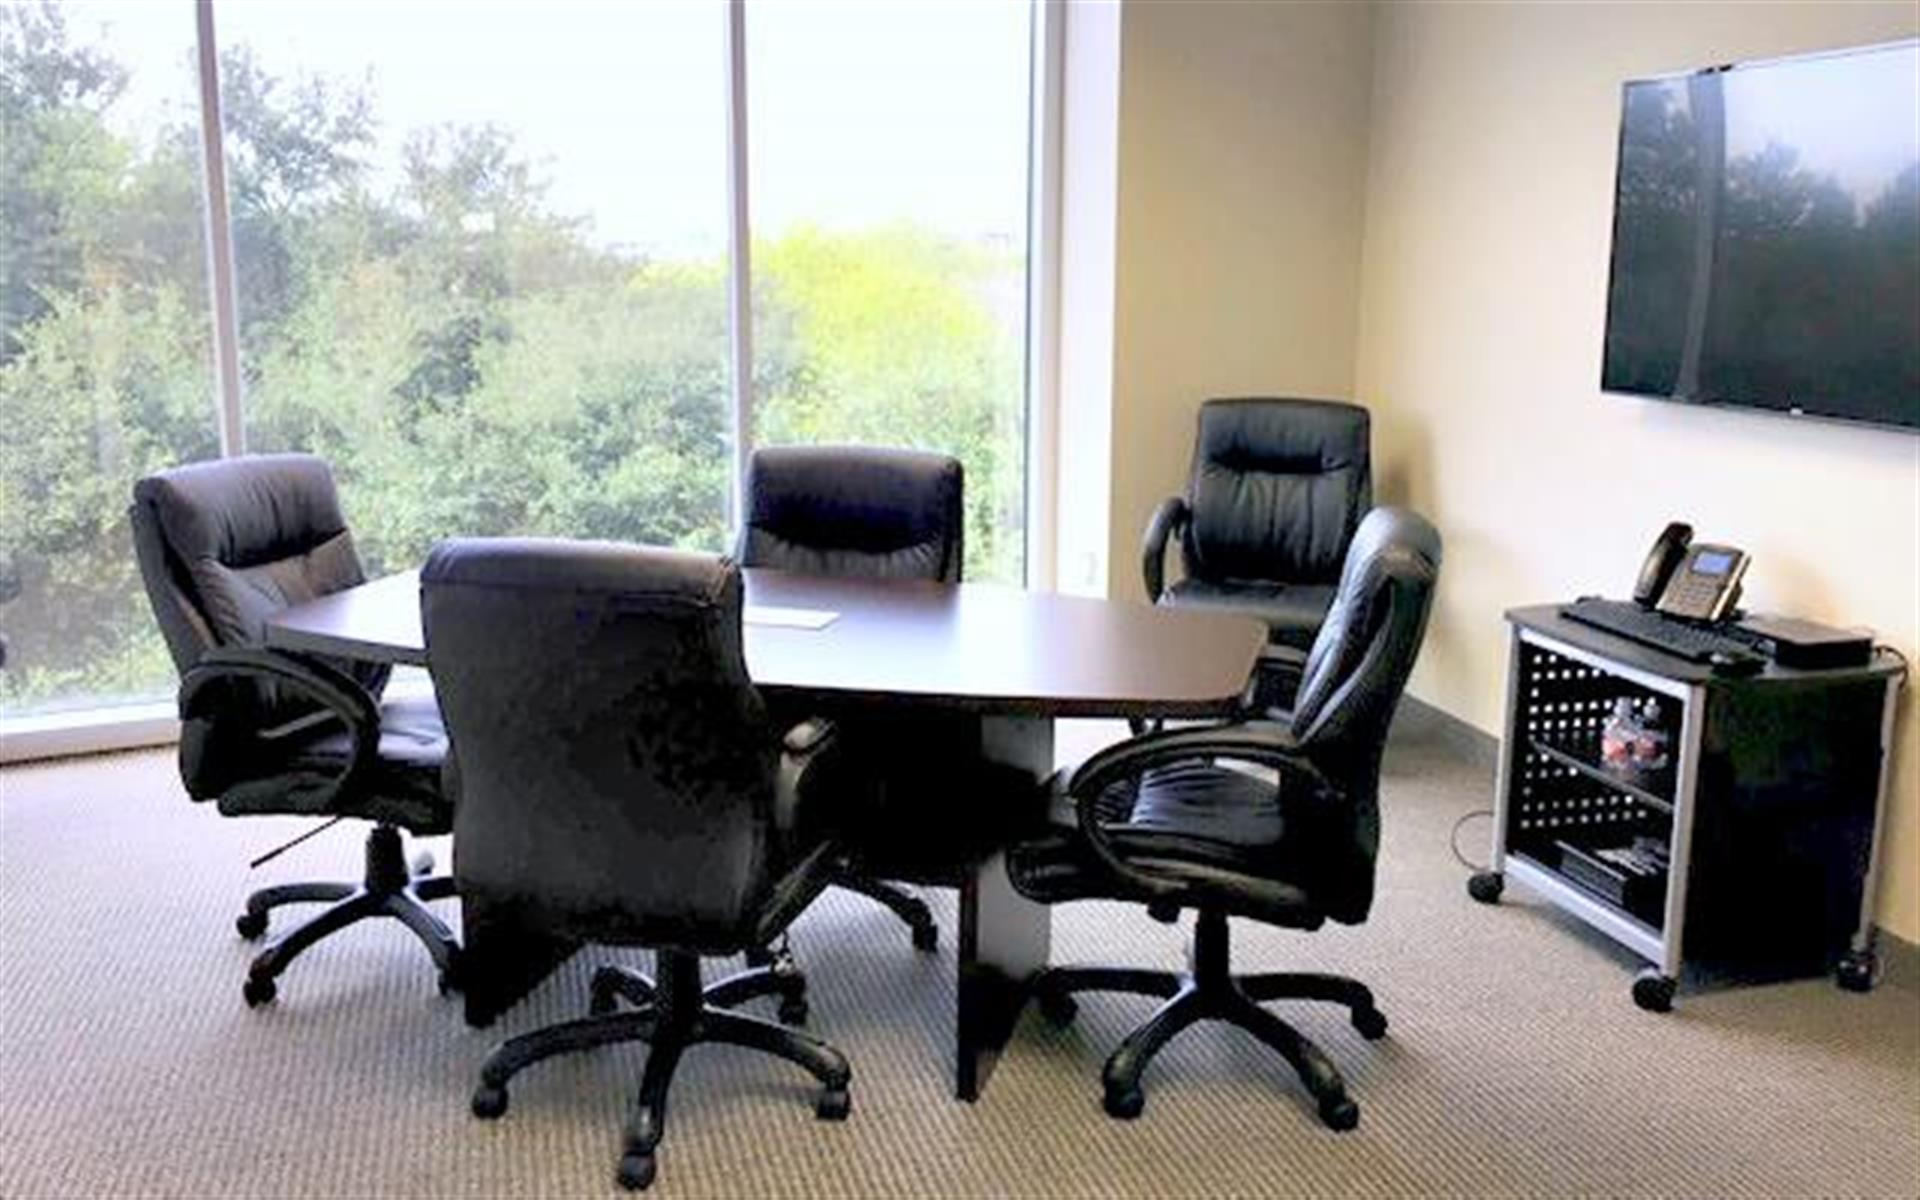 CUBExec - Executive Suites @ The Interchange Building - Small Conference Room 300